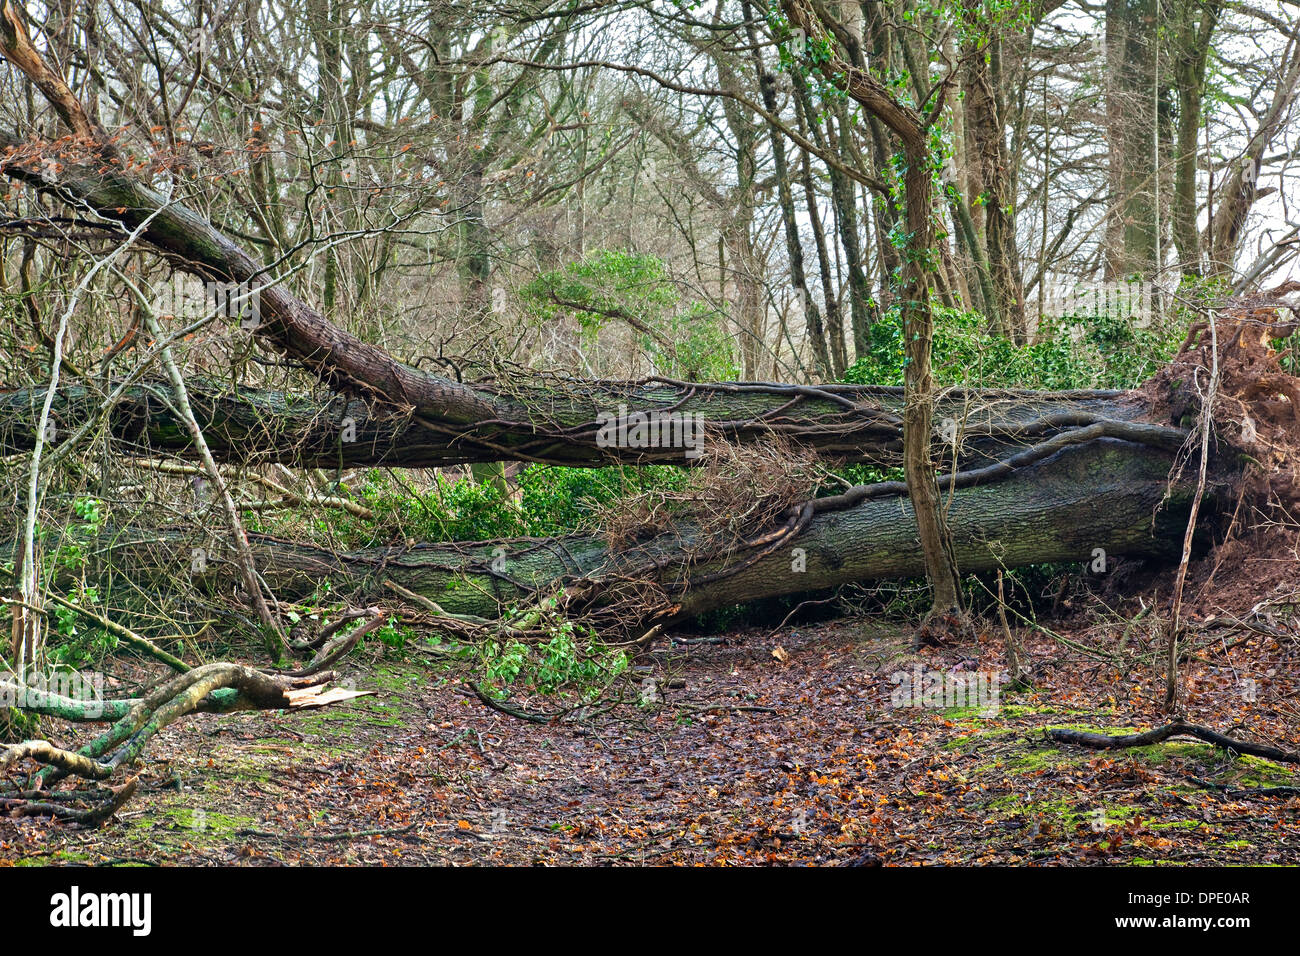 A fallen tree blown over by the wind in woodland blocking a path - Stock Image